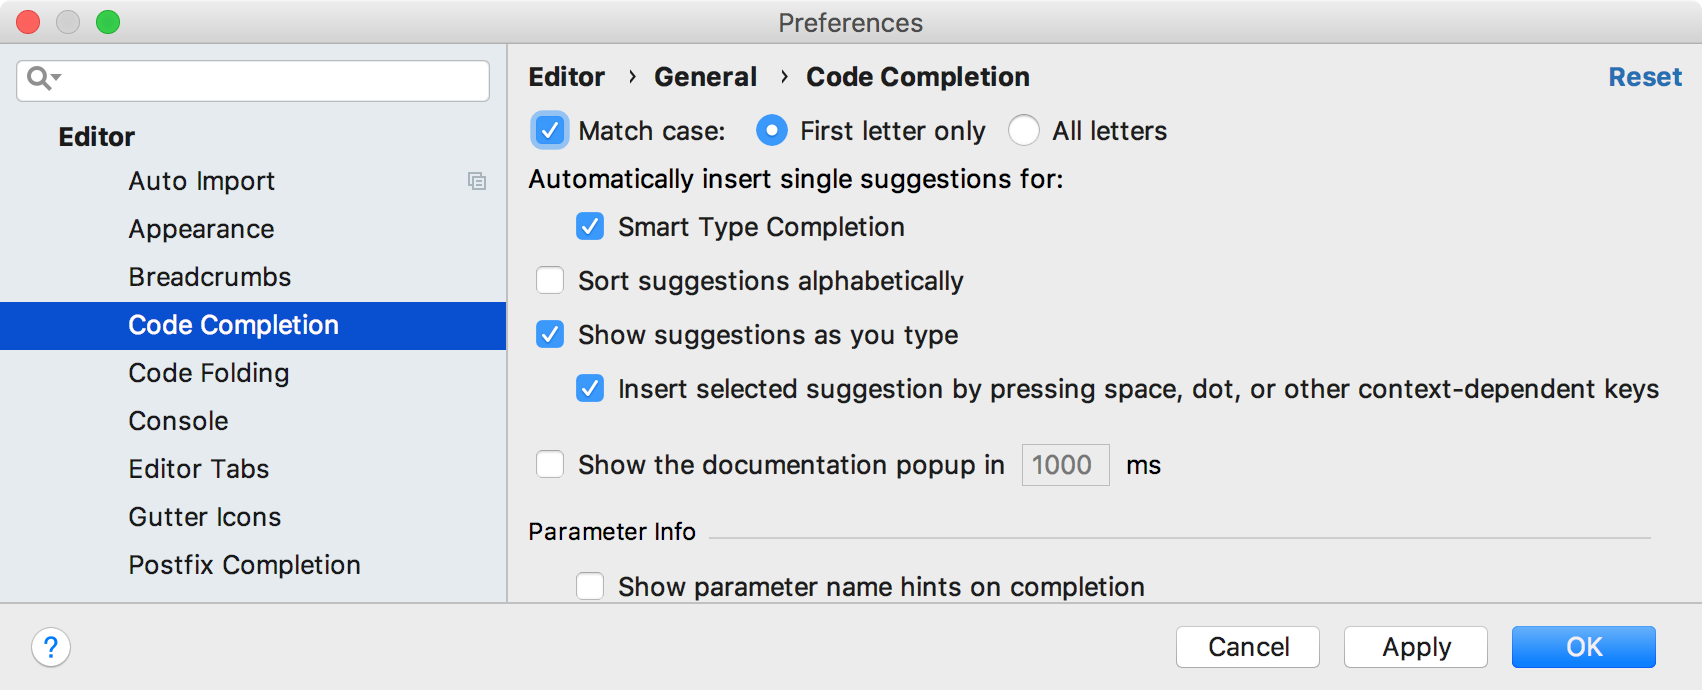 competion_preferences